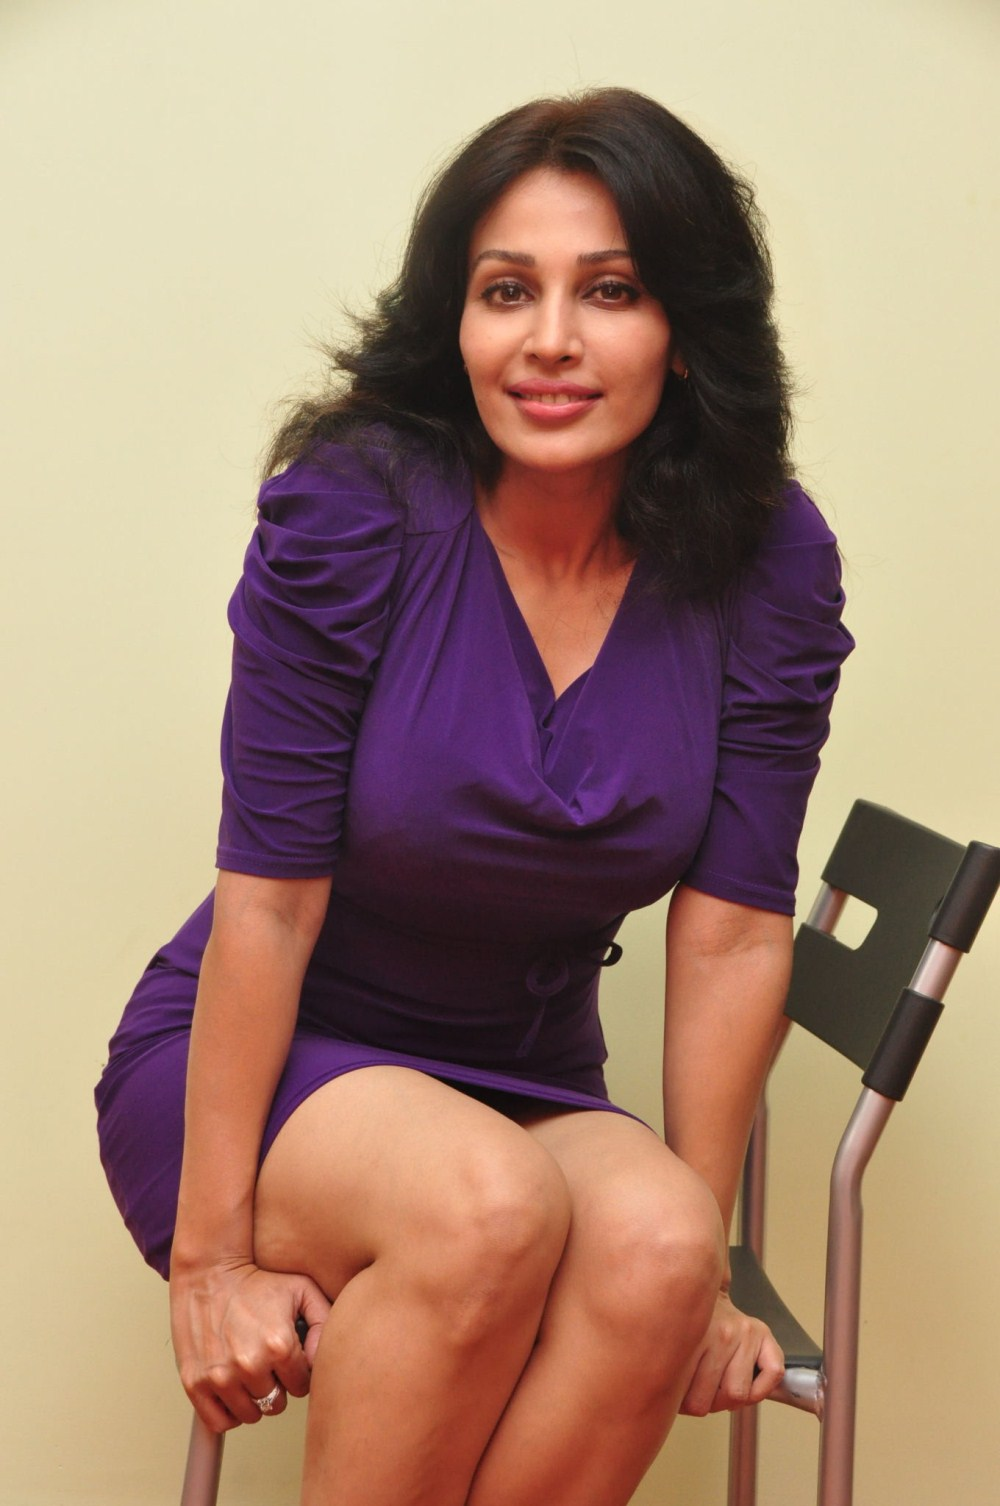 Cute fairy beauty asha saini photo-shoot